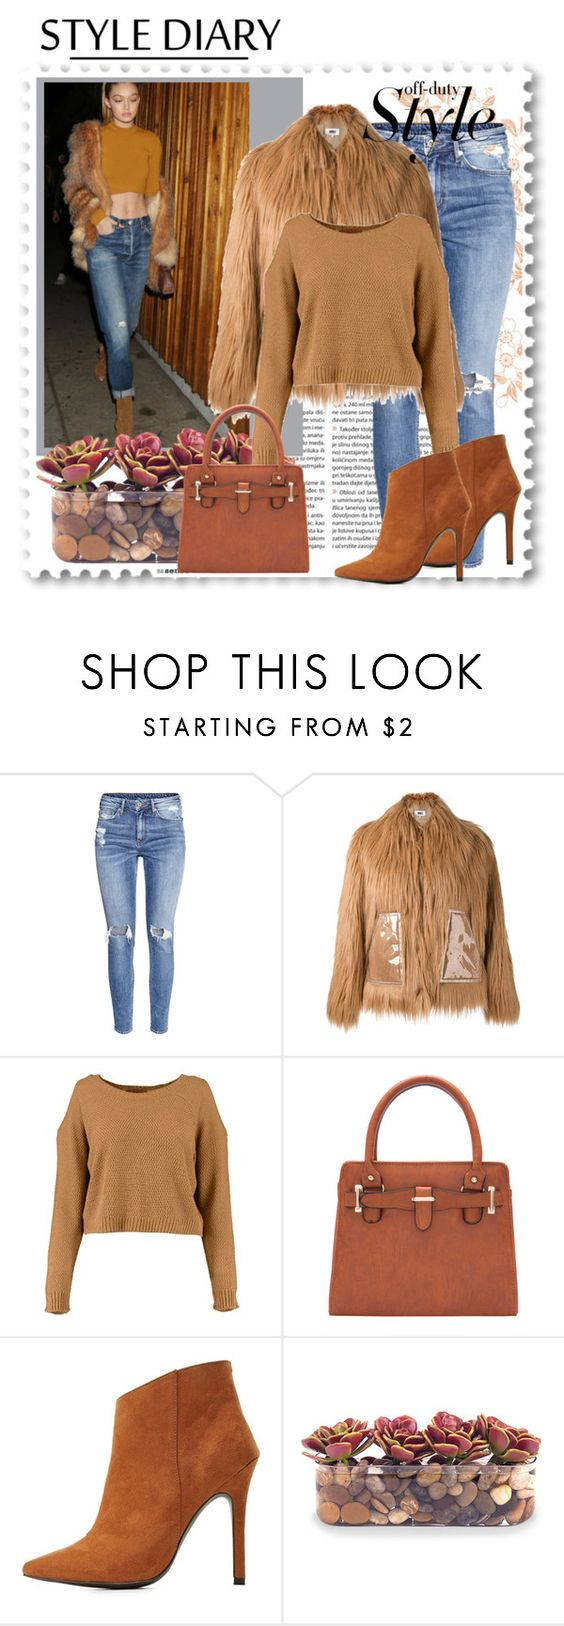 """gigi"" by sunshine-189 ❤ liked on Polyvore featuring H&M, MM6 Maison Margiela, Charlotte Russe and John-Richard"